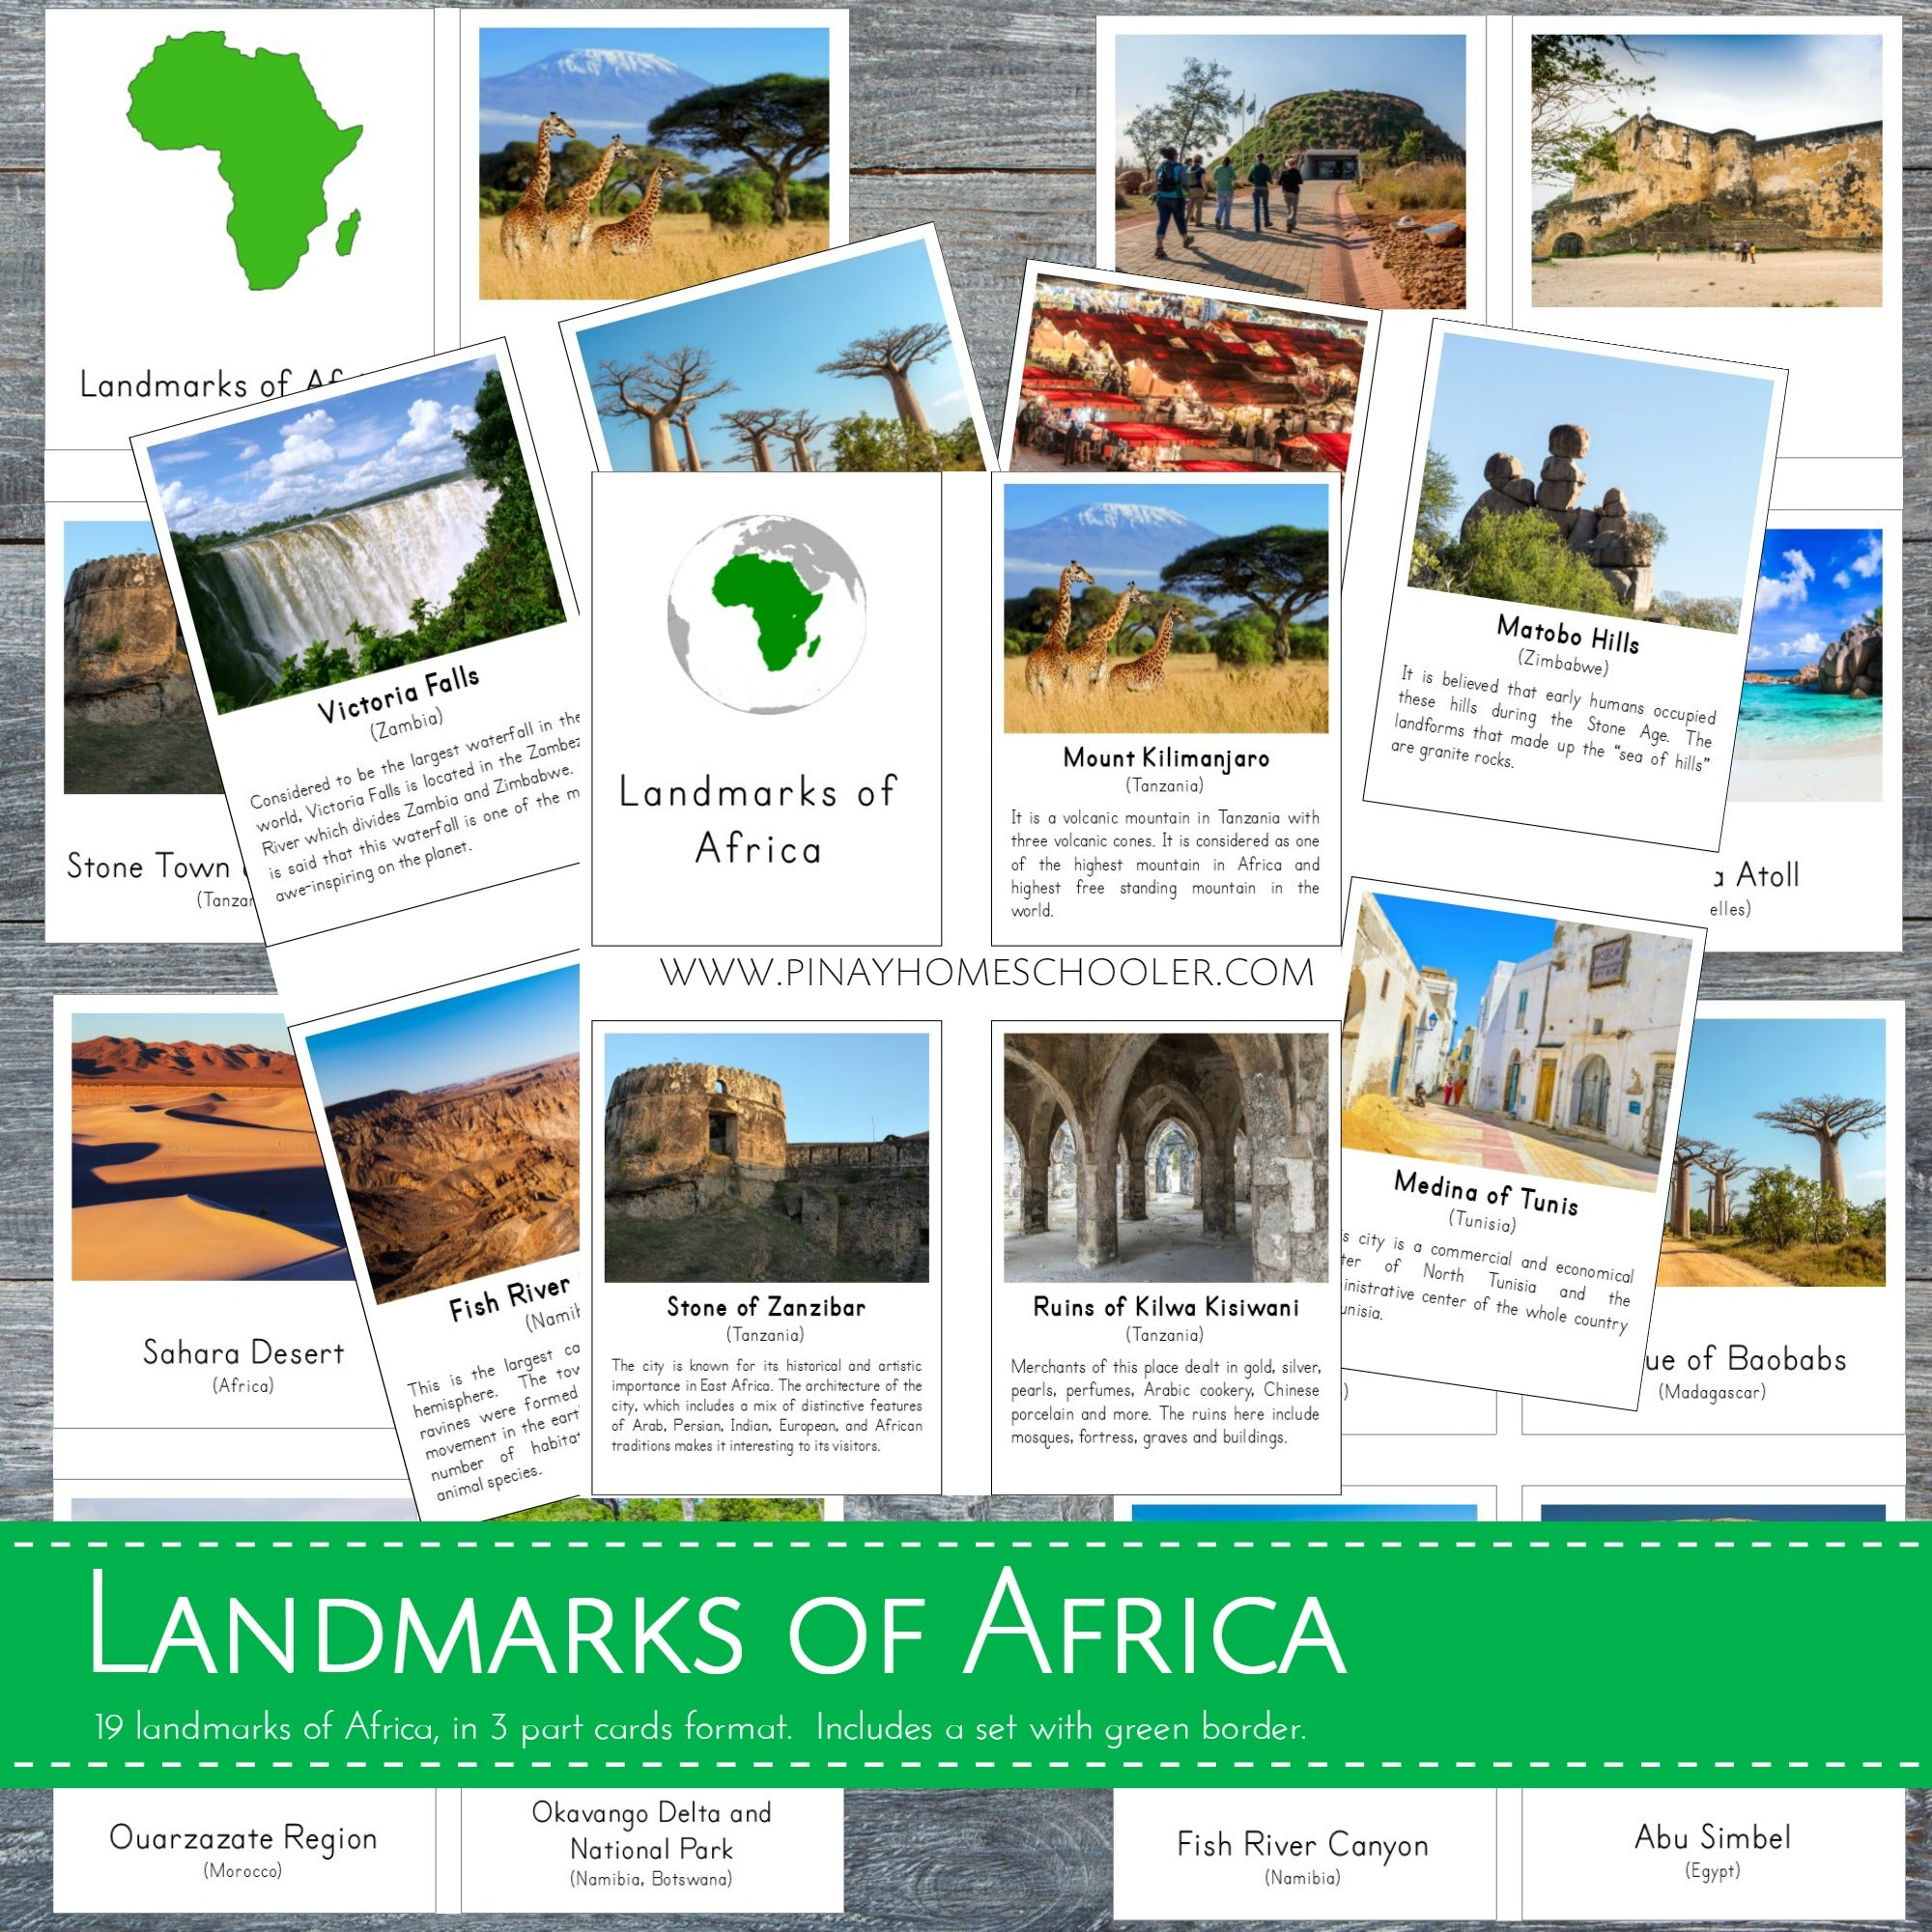 Landmarks of Africa Montessori 3 Part Cards and Fact Cards